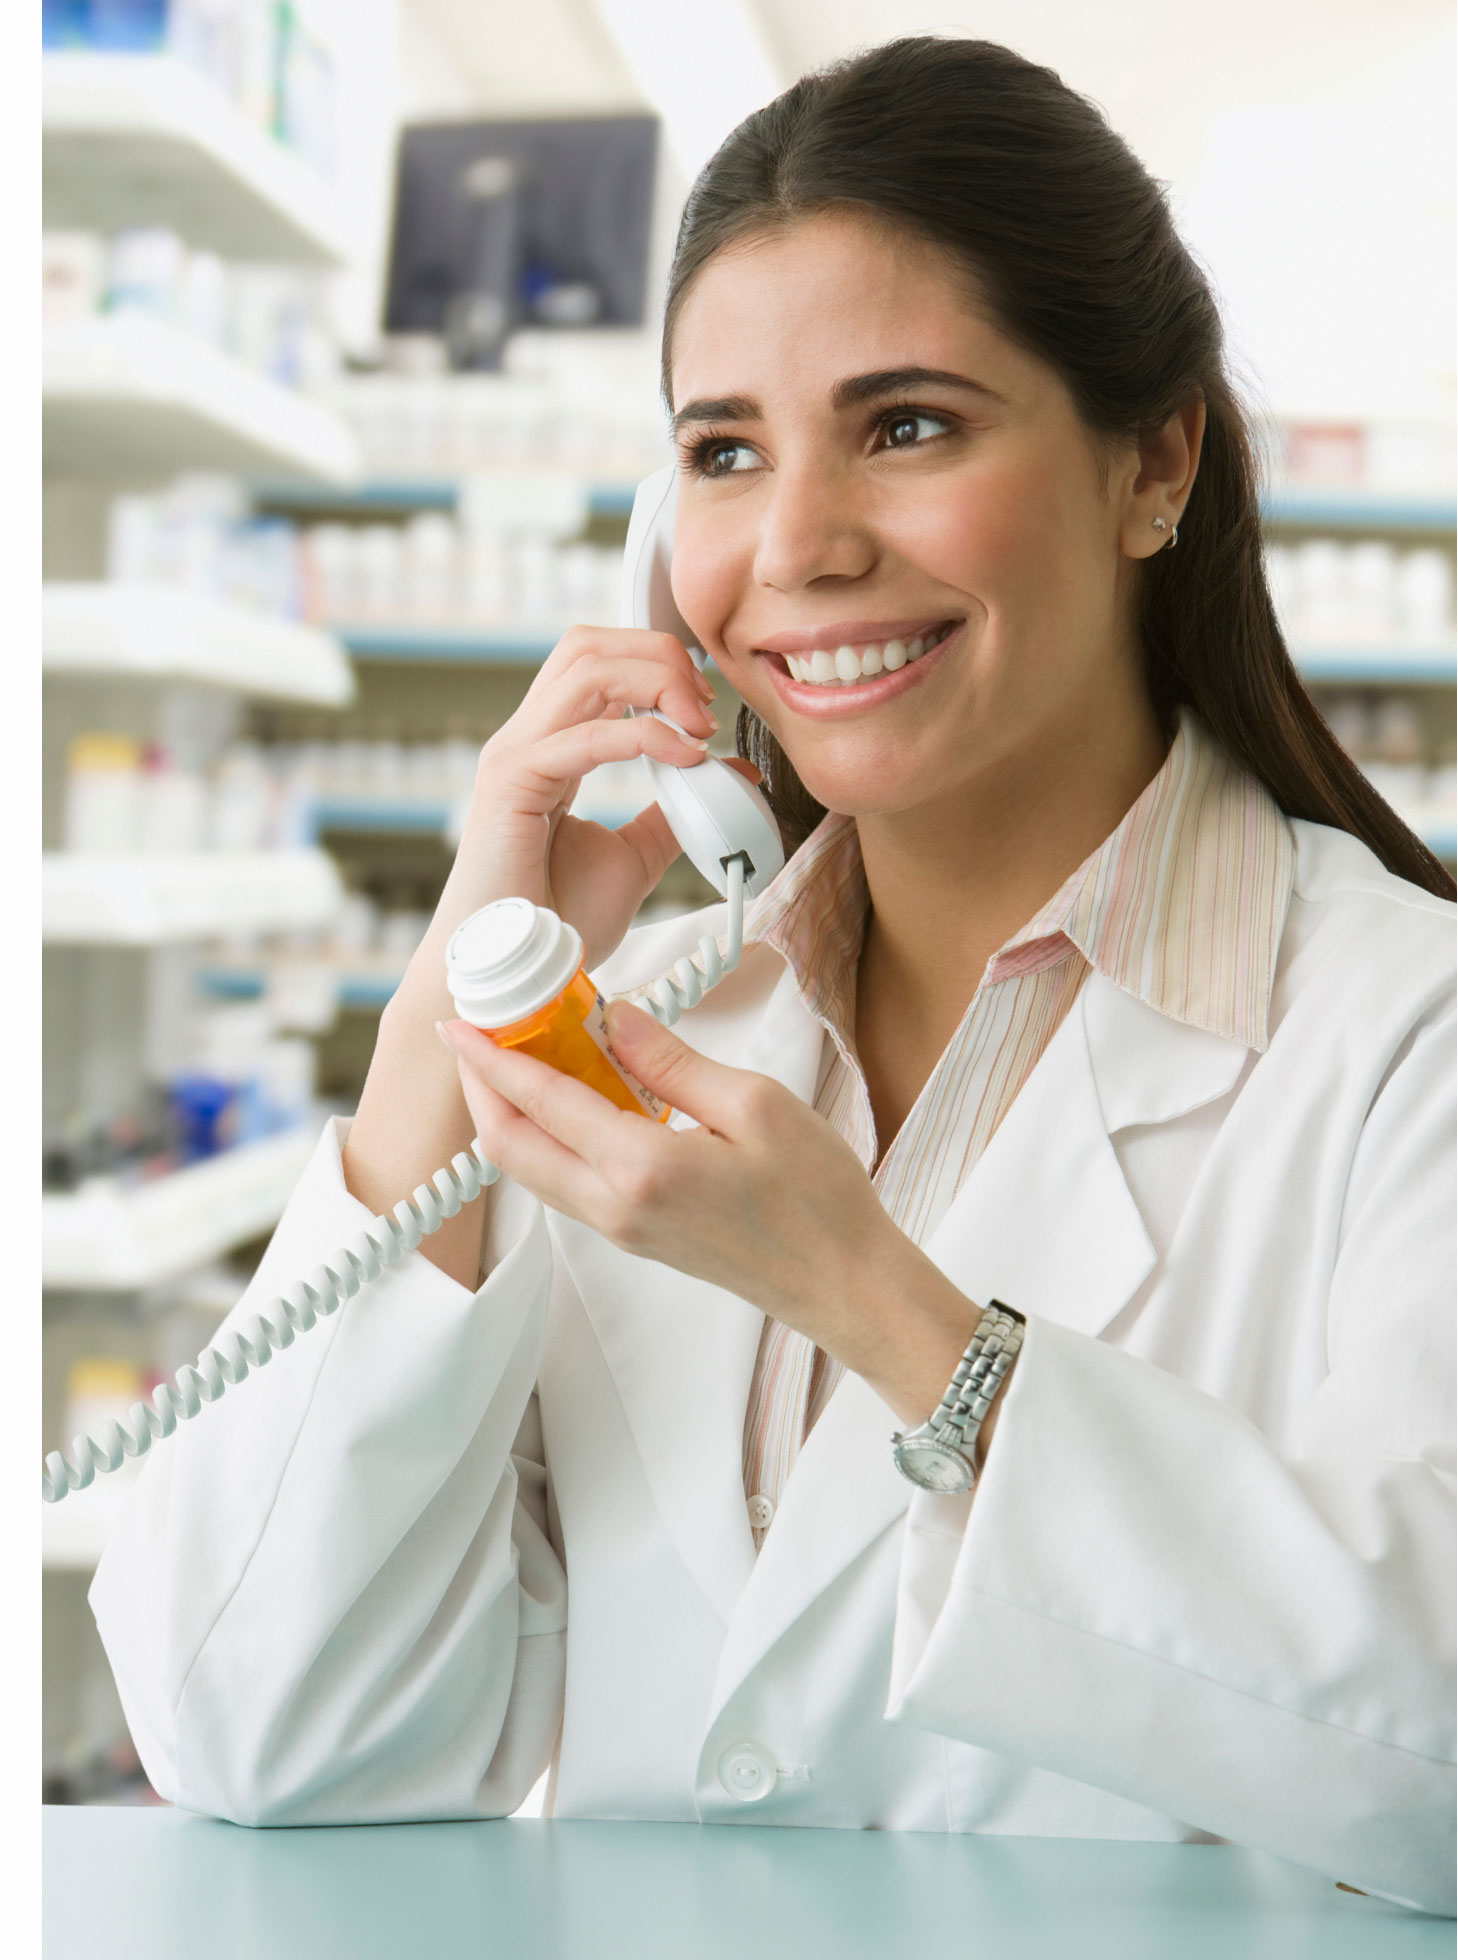 informative pharmacy technicians The role of information technology in advancing pharmacy practice models to improve patient safety.